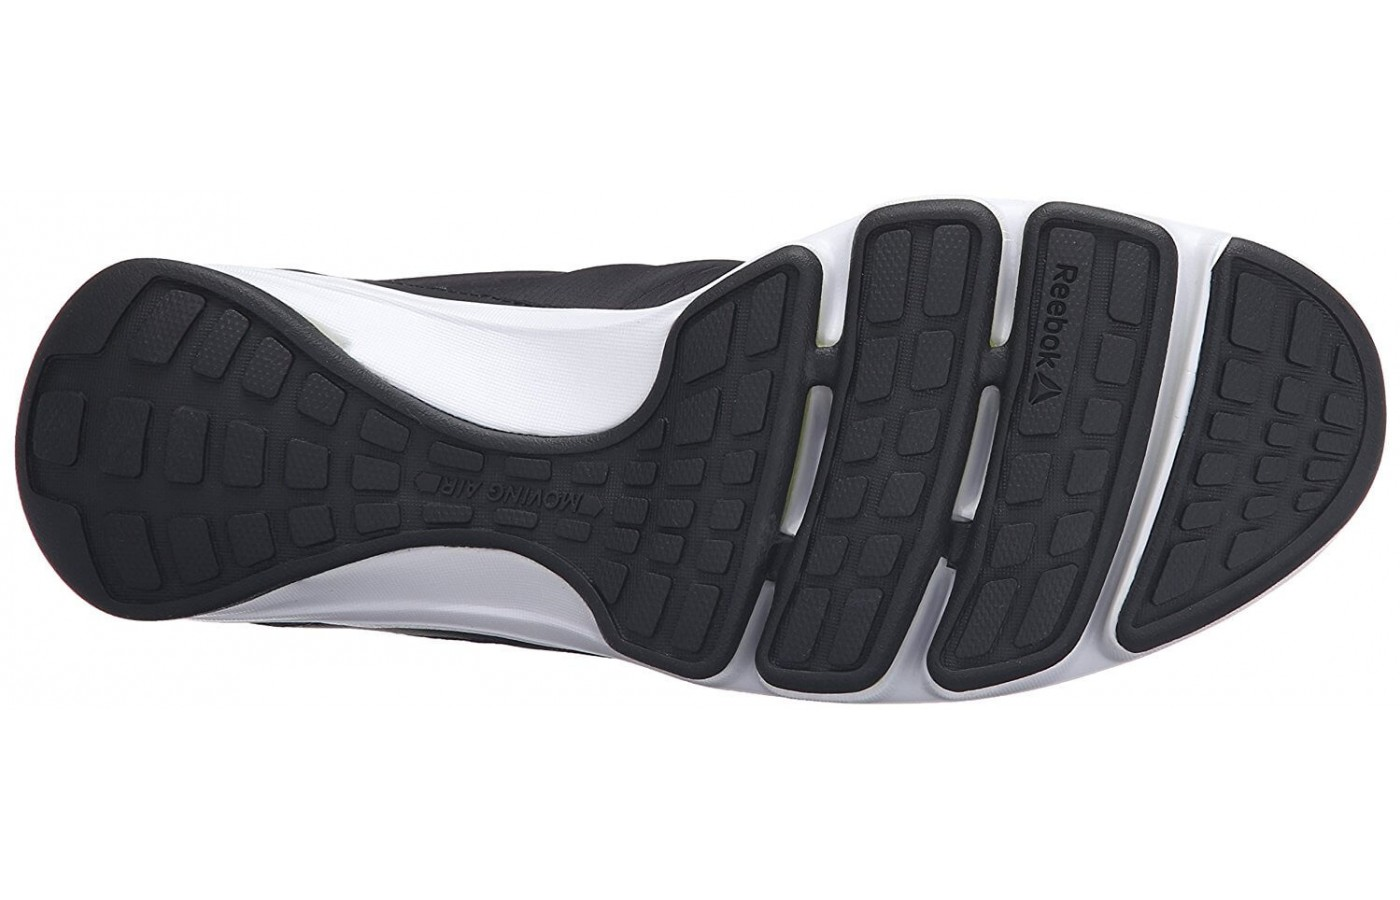 The Reebok Cloudride DMX has a rubber outsole